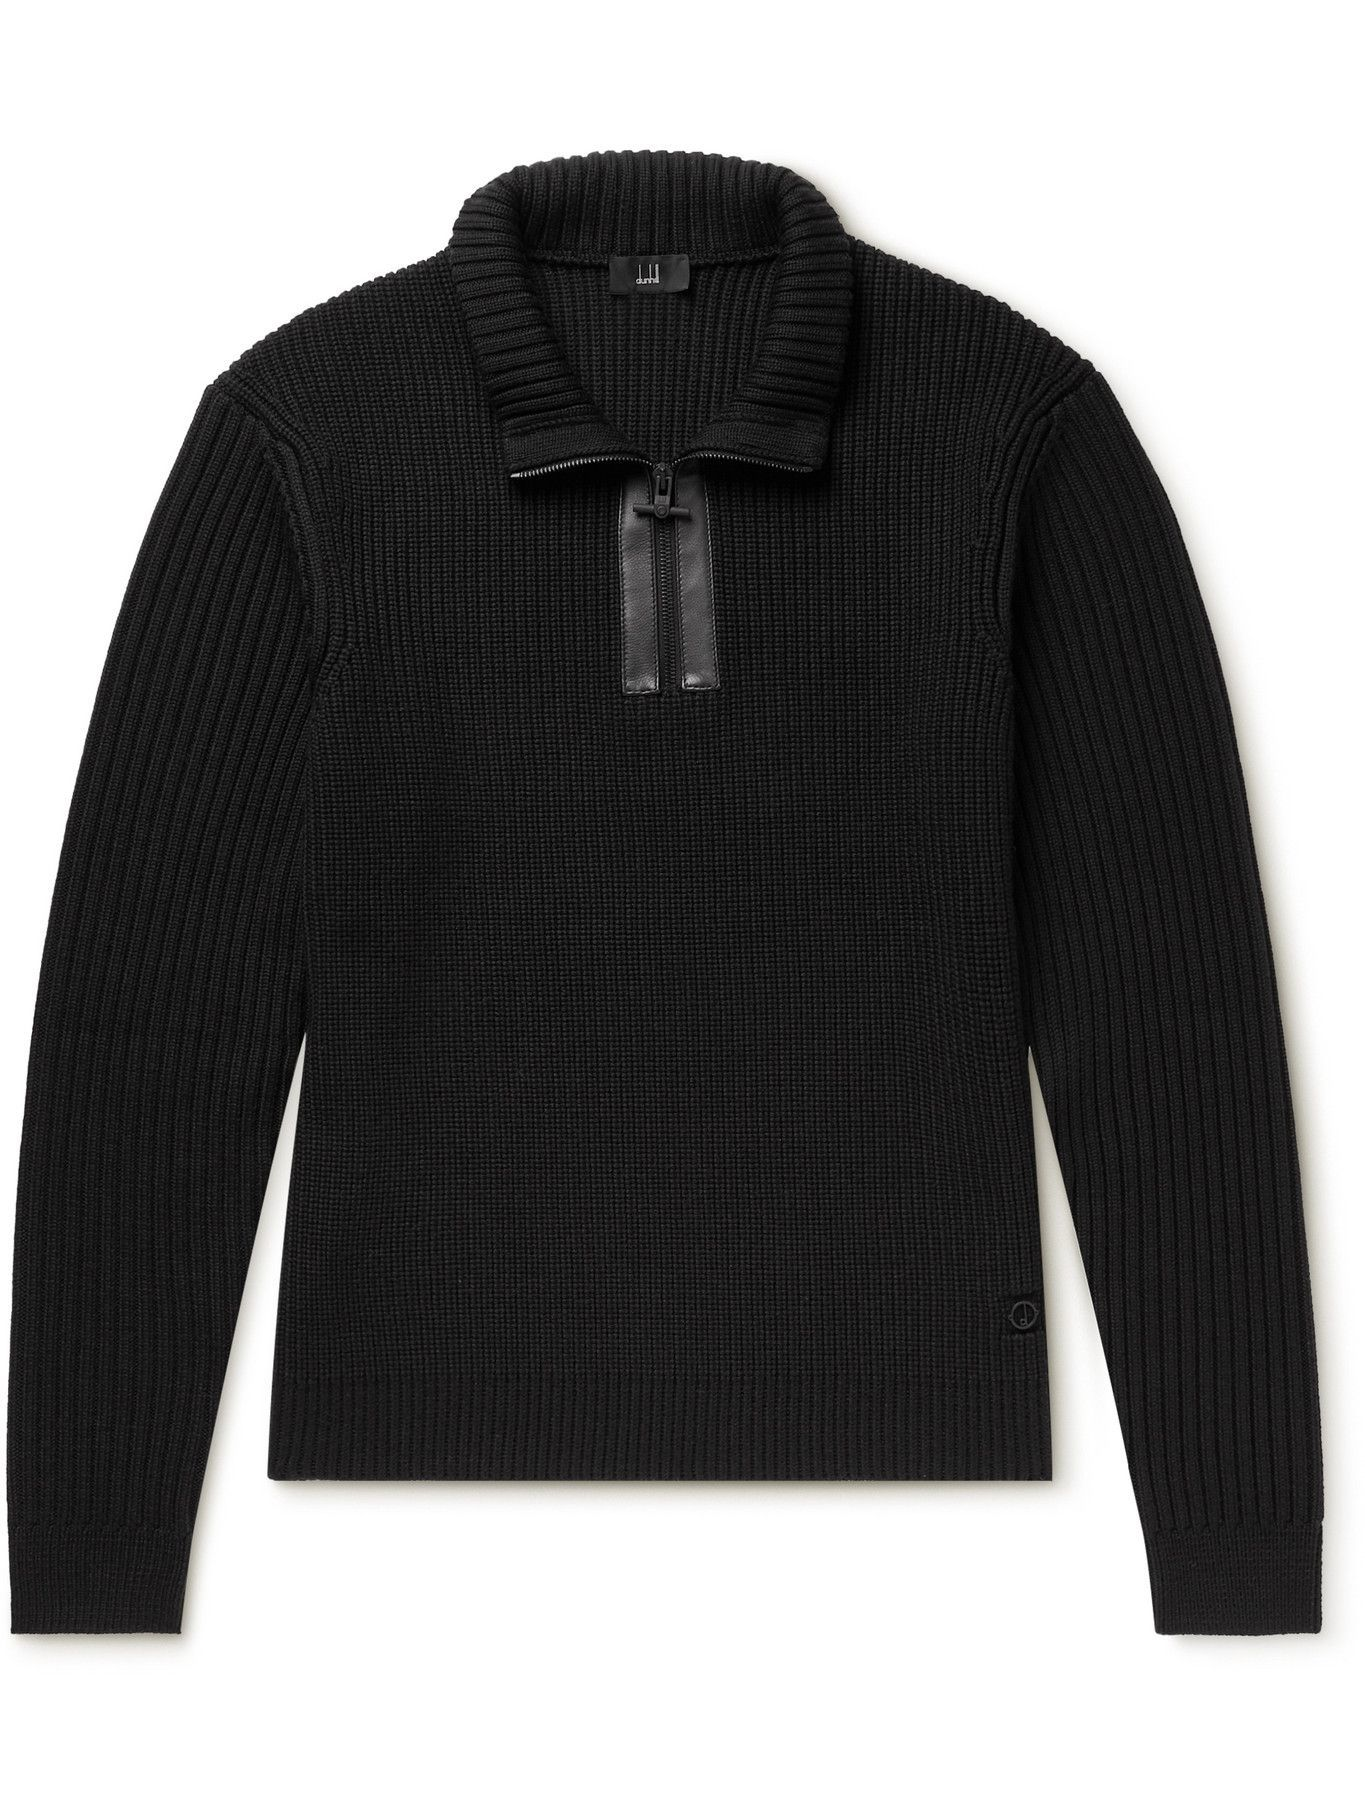 DUNHILL - Leather-Trimmed Ribbed Wool Half-Zip Sweater - Black